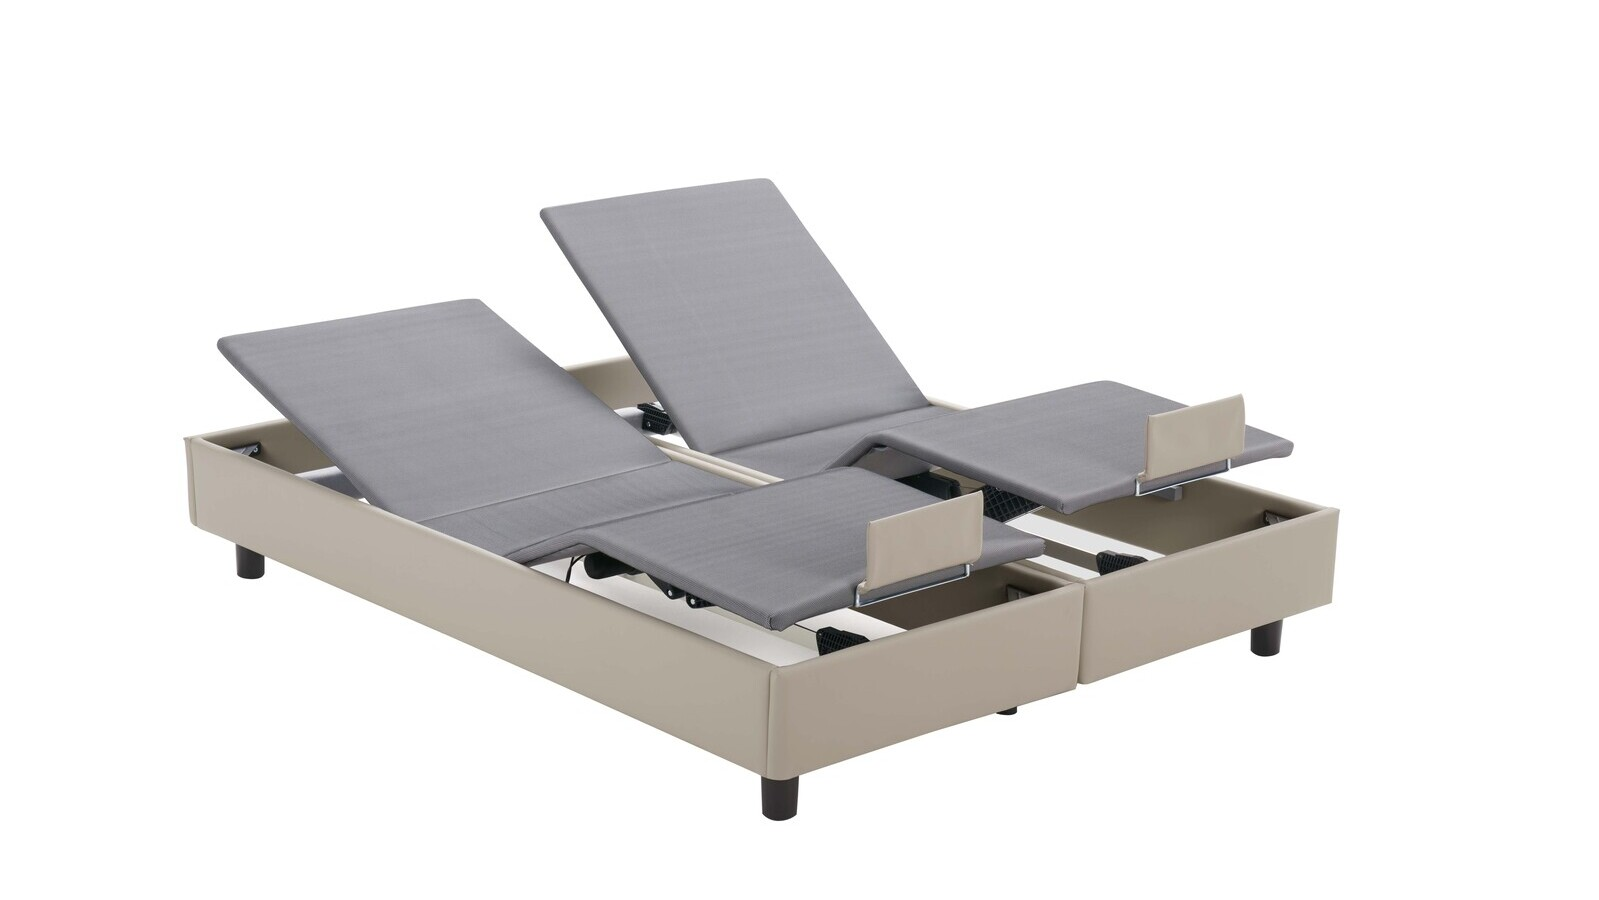 sommier-elettrico-mybed_1